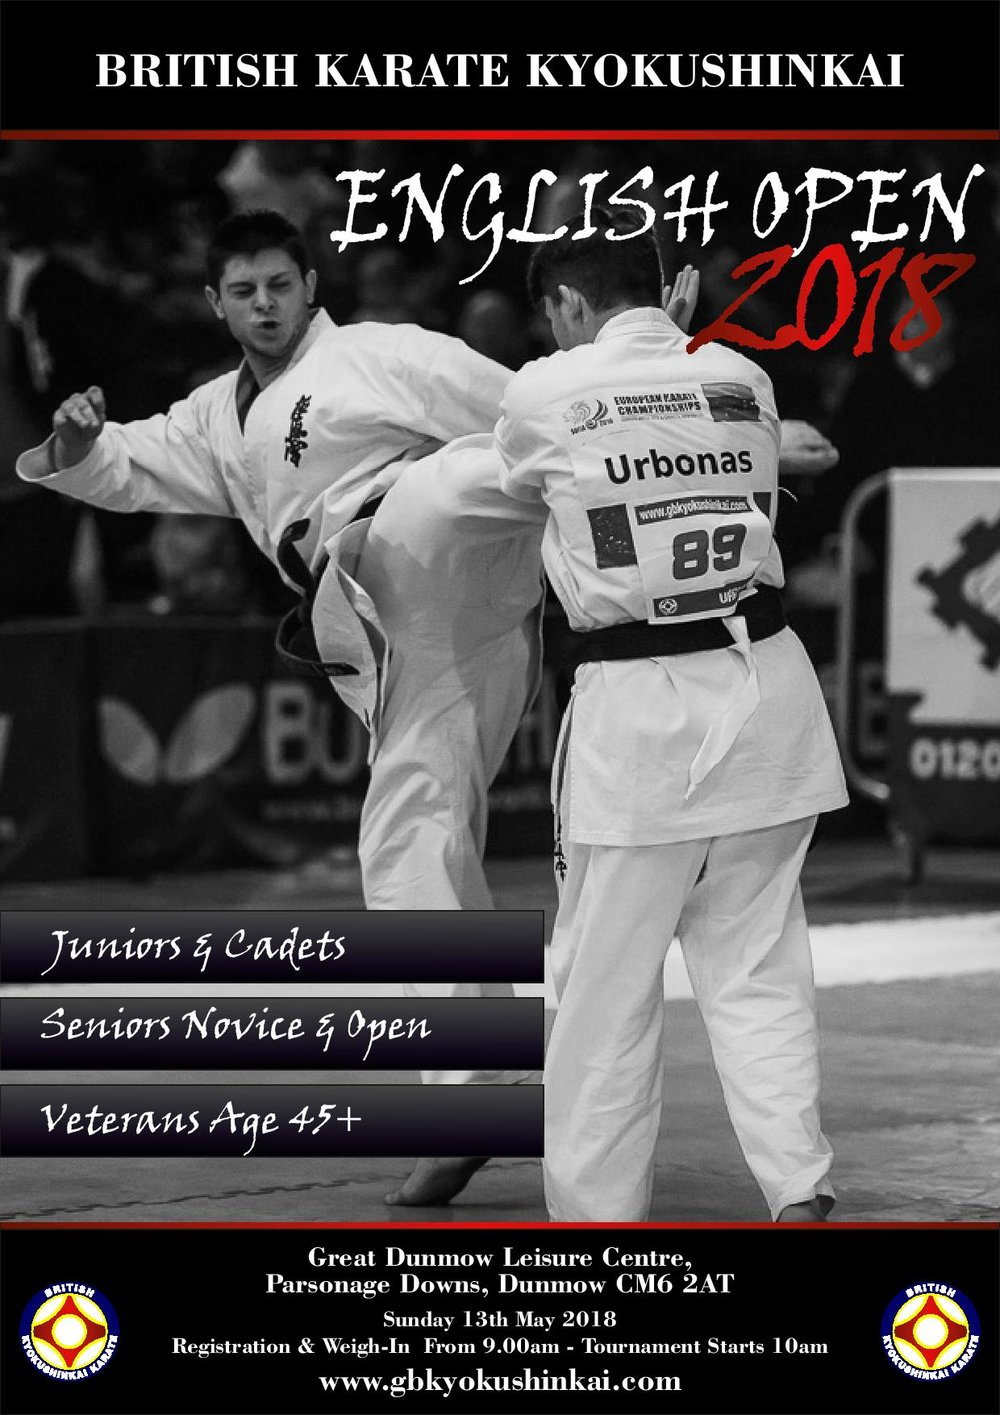 BKK English Open Tournament 2018-page-001.jpg